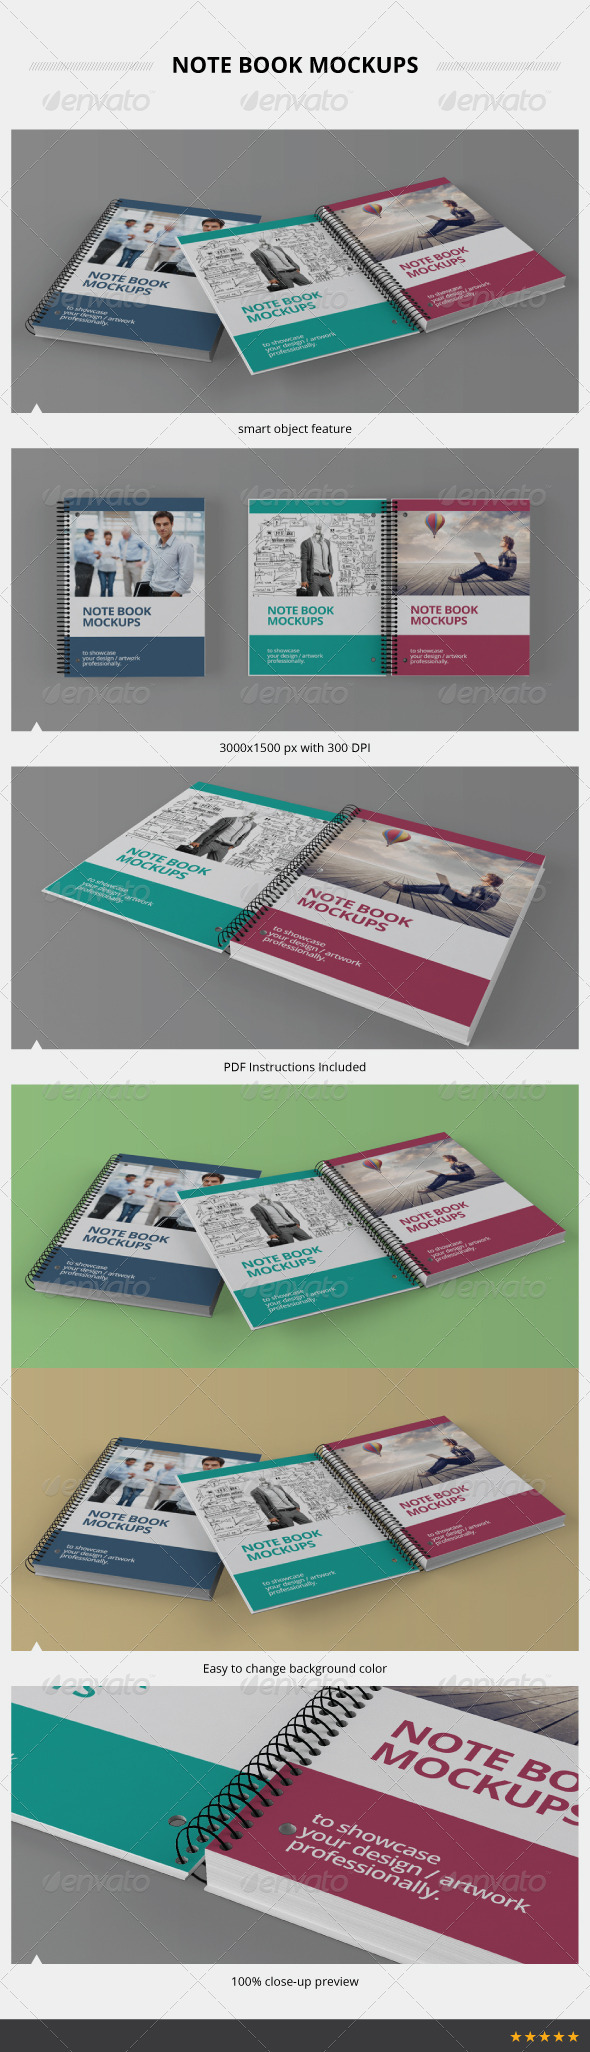 GraphicRiver Note Book Mockups 3945852